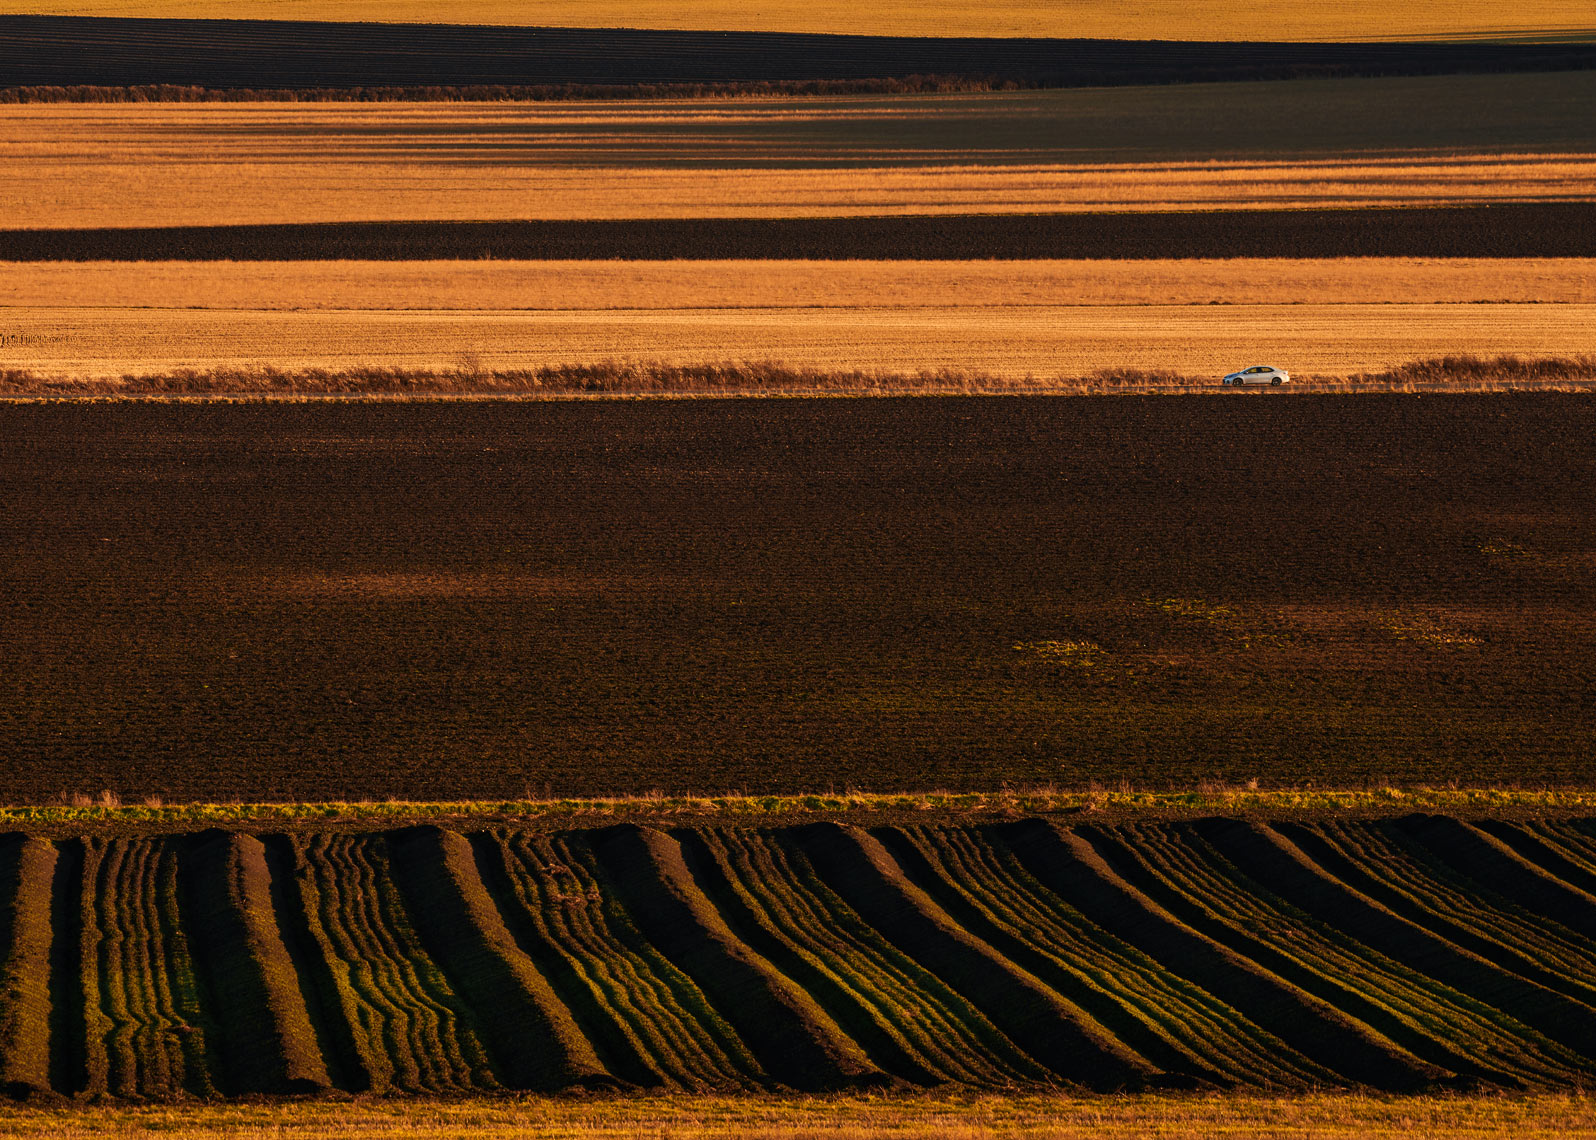 Landscape photography of land used for Agriculture